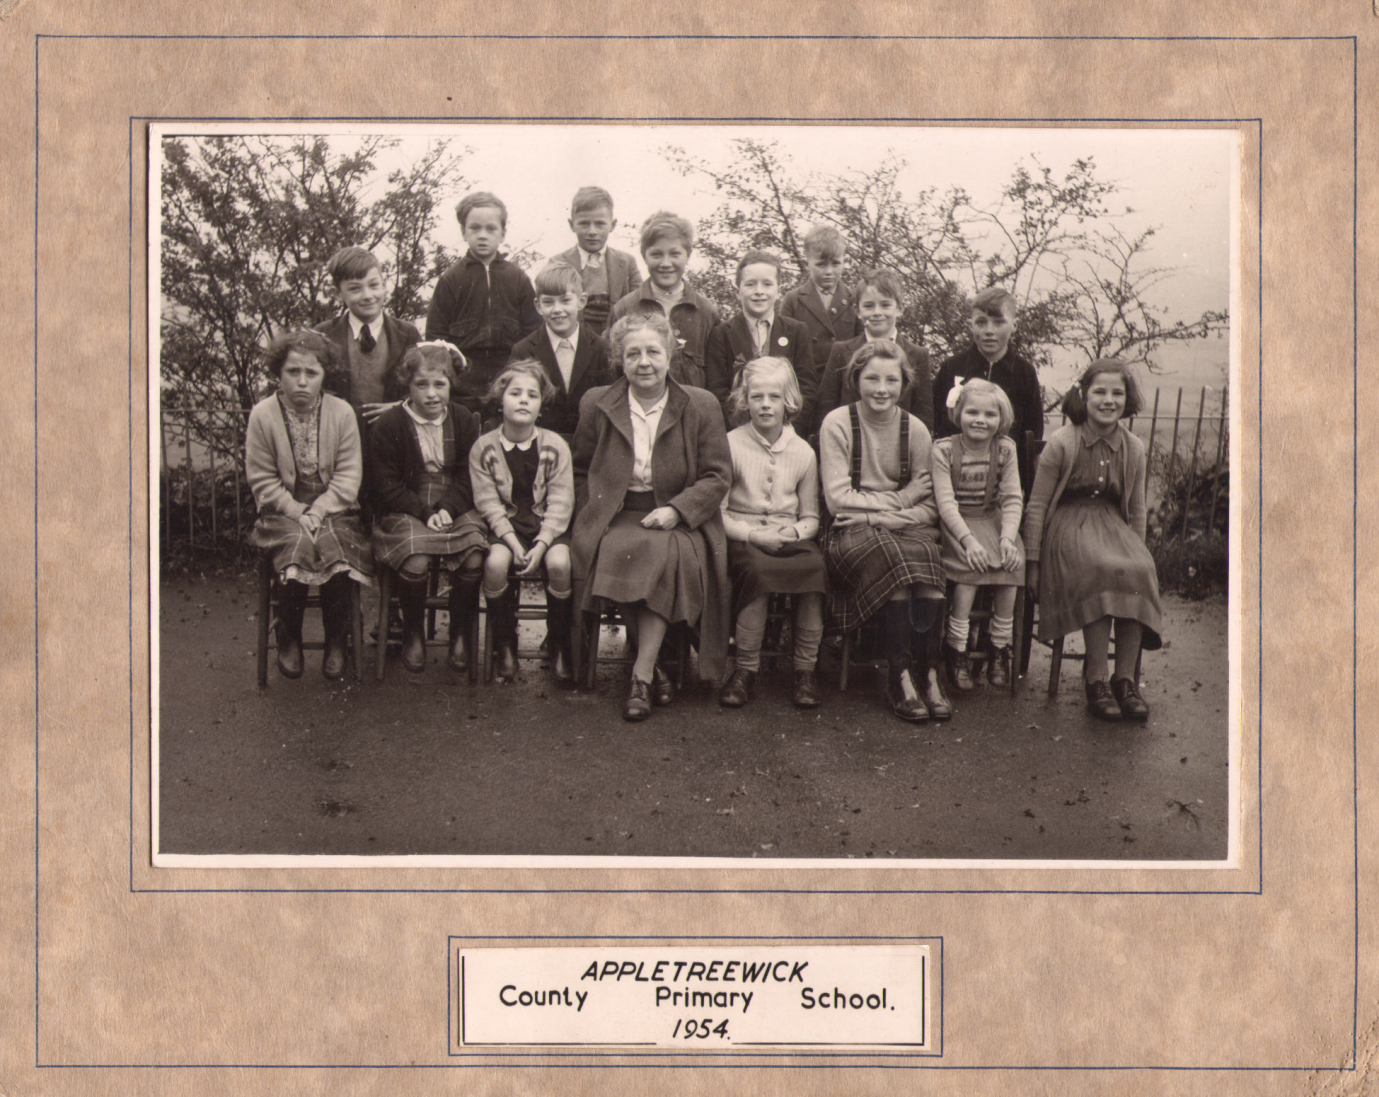 The headteacher and fifteen pupils